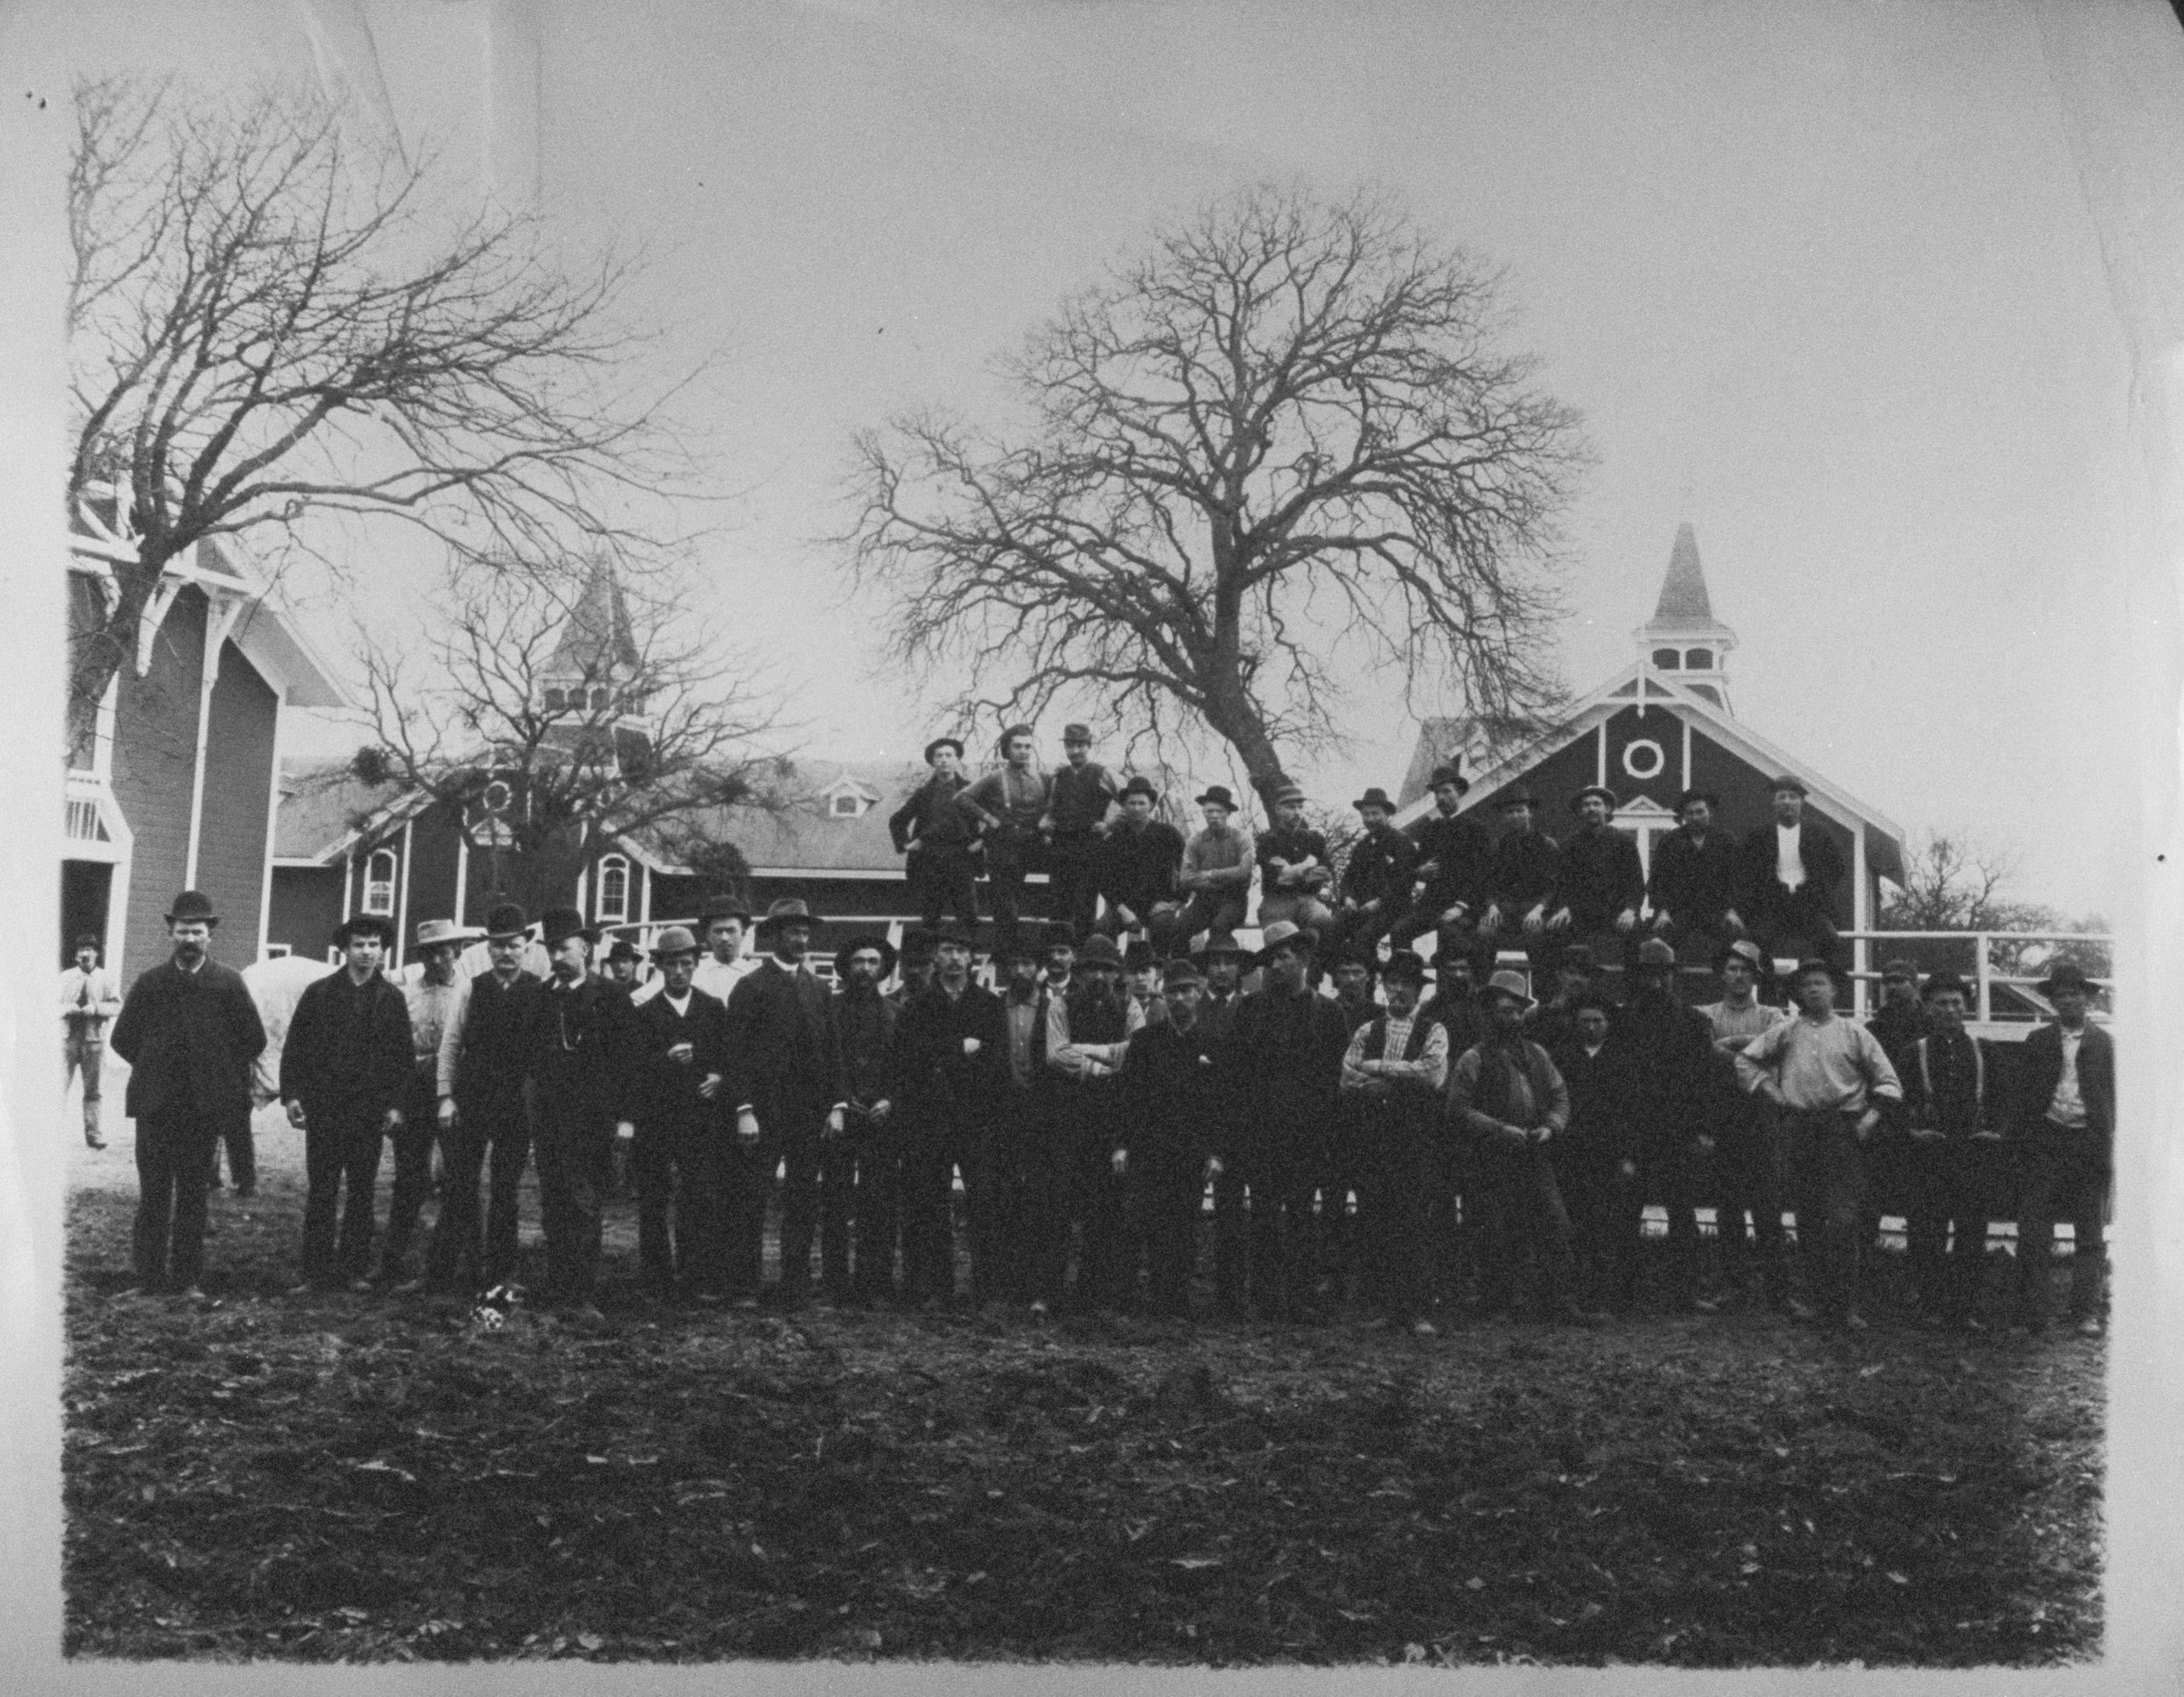 Stanford Stock Farm employees in front of a barn, 1890. Courtesy of PAHA.